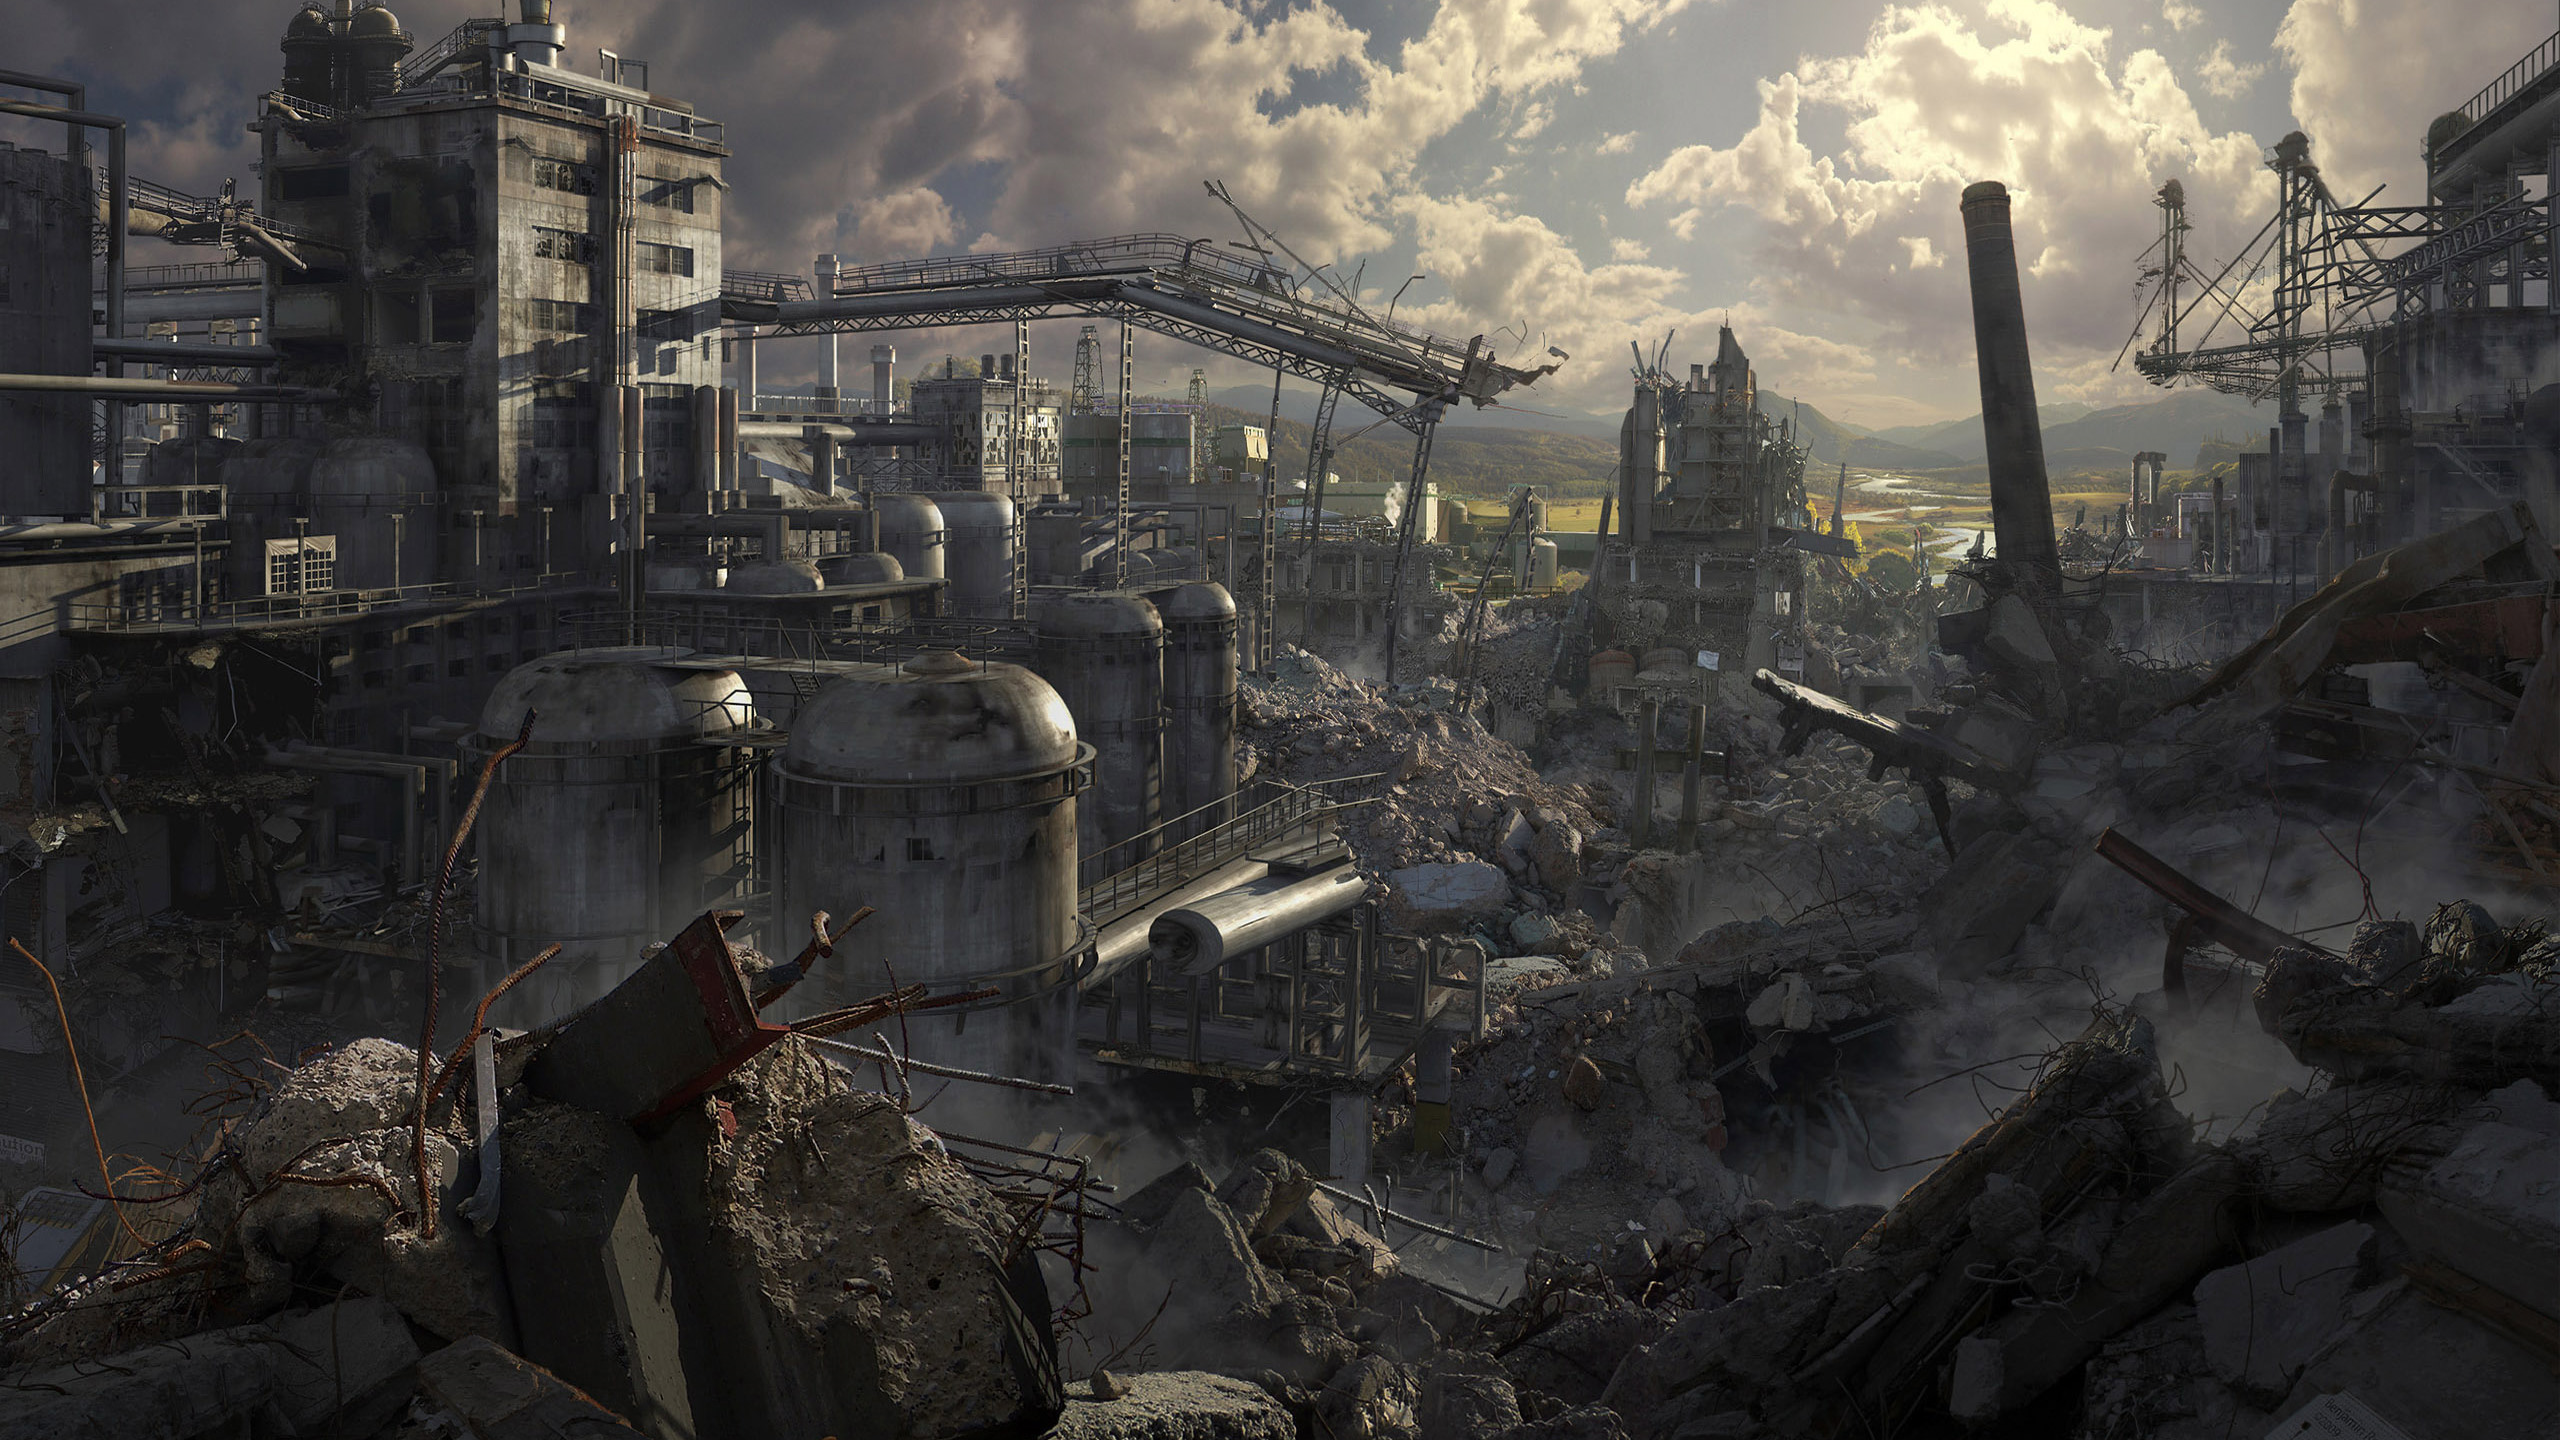 High Resolution Wallpaper | Post Apocalyptic 2560x1440 px